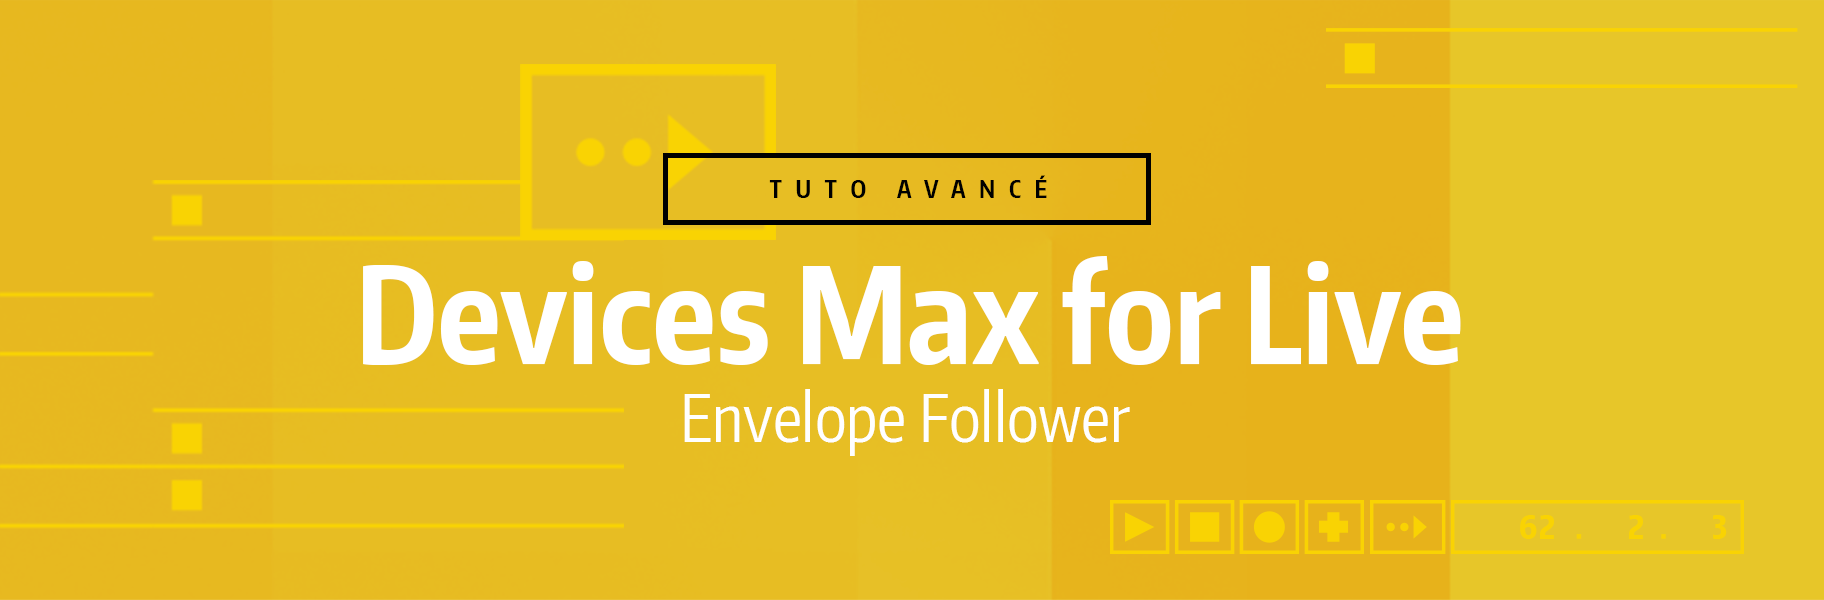 Tutoriel Ableton Live - Devices Max for Live - Envelope Follower